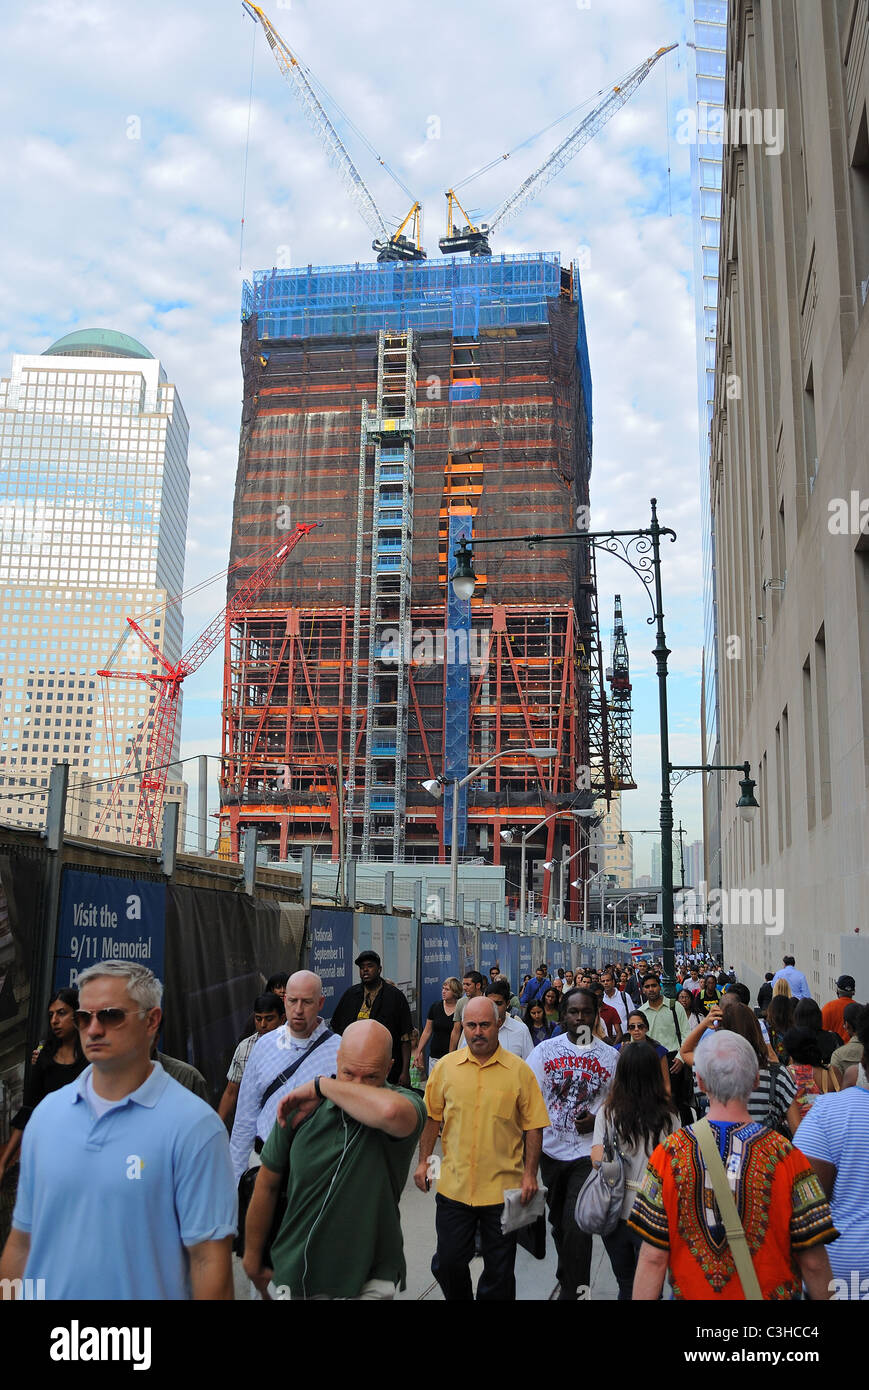 The ongoing construction on the Freedom Tower at the World Trade Center in New York City. September 3, 2010. - Stock Image